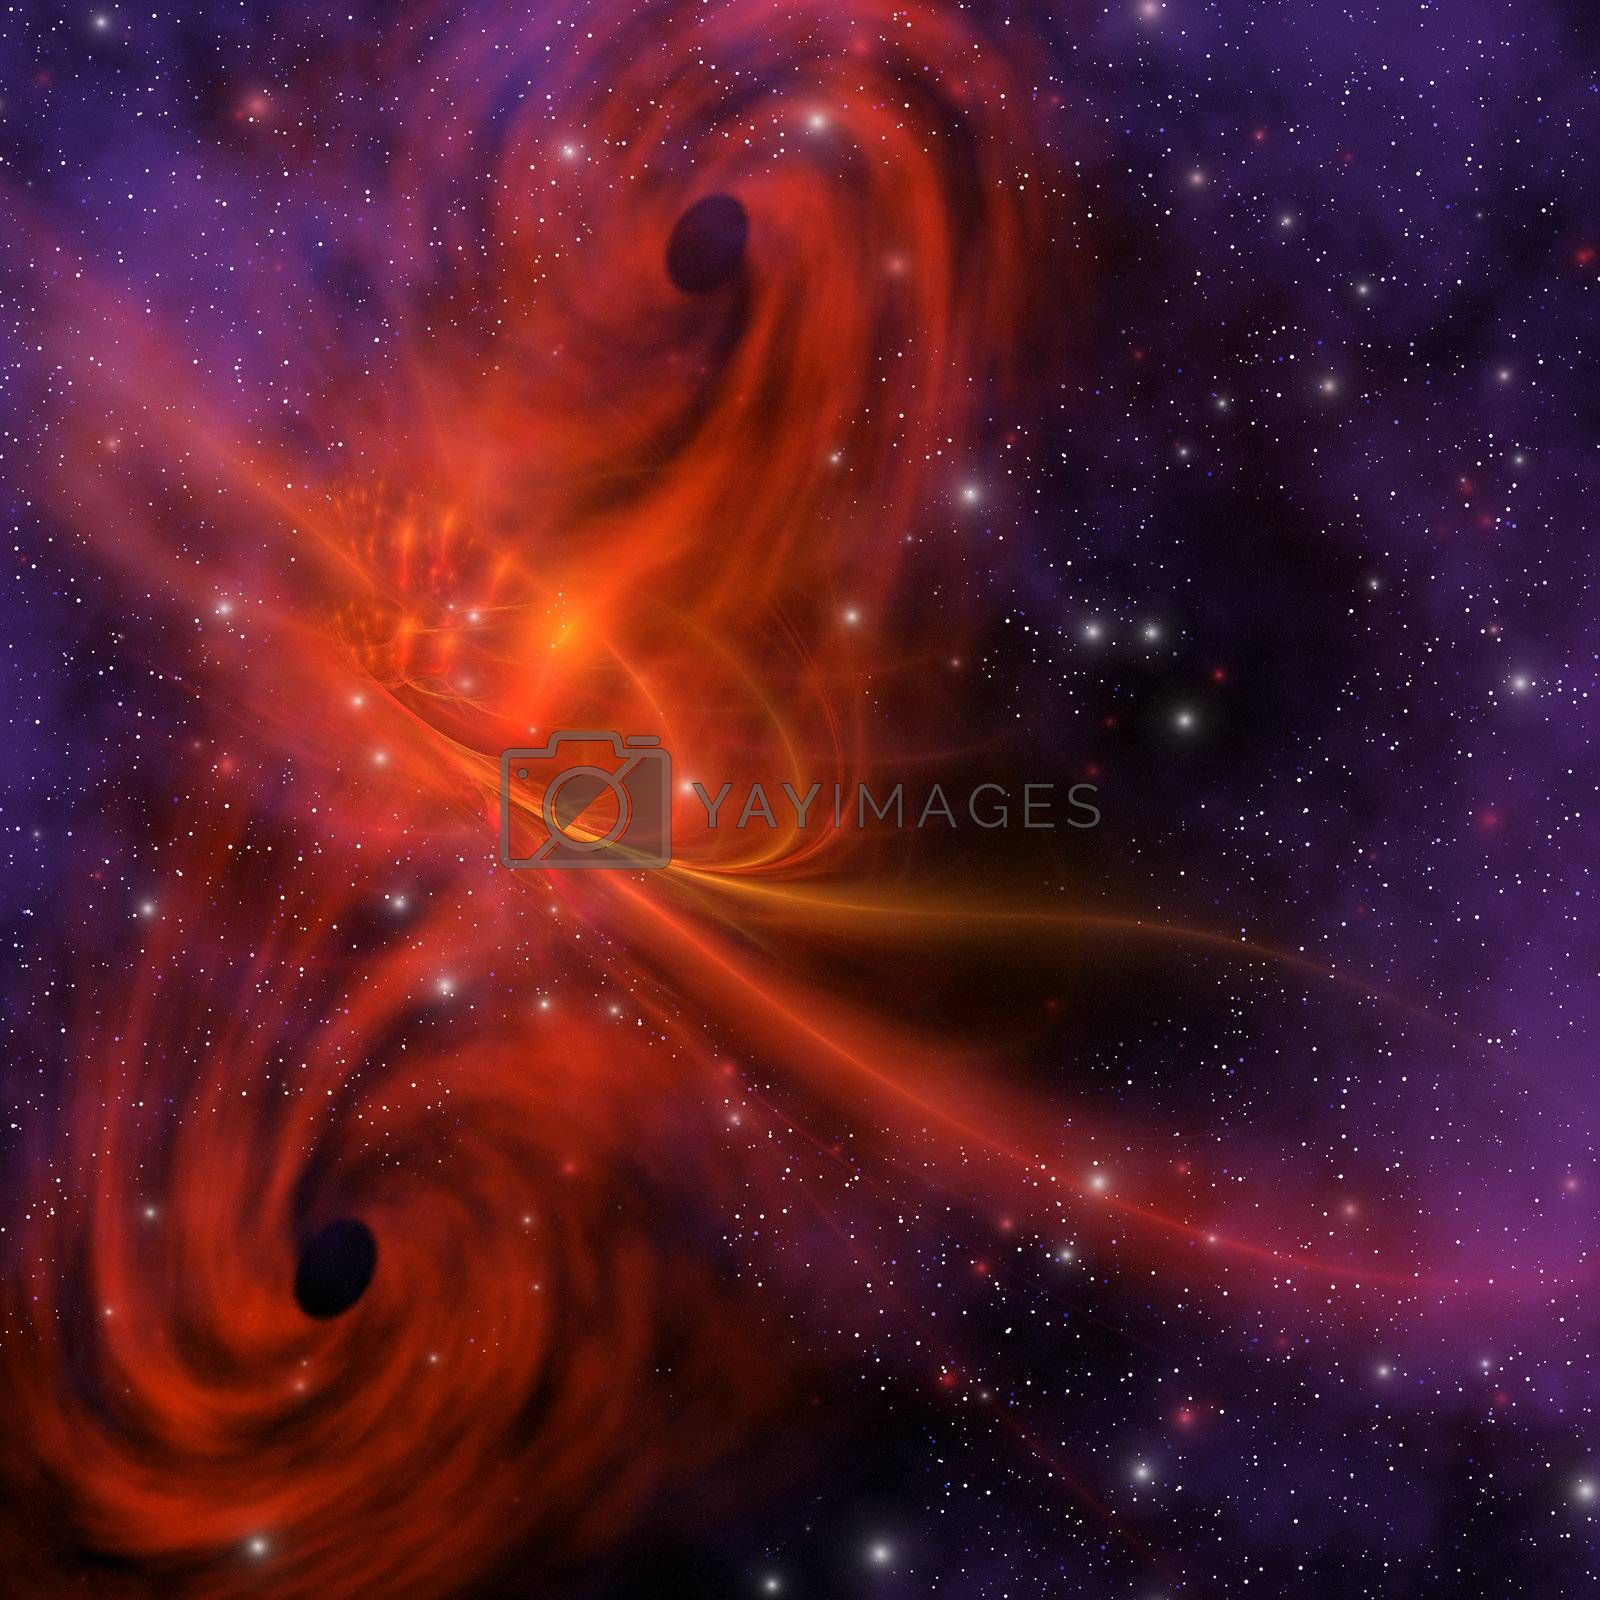 This cosmic phenomenon is a whirlwind in space.